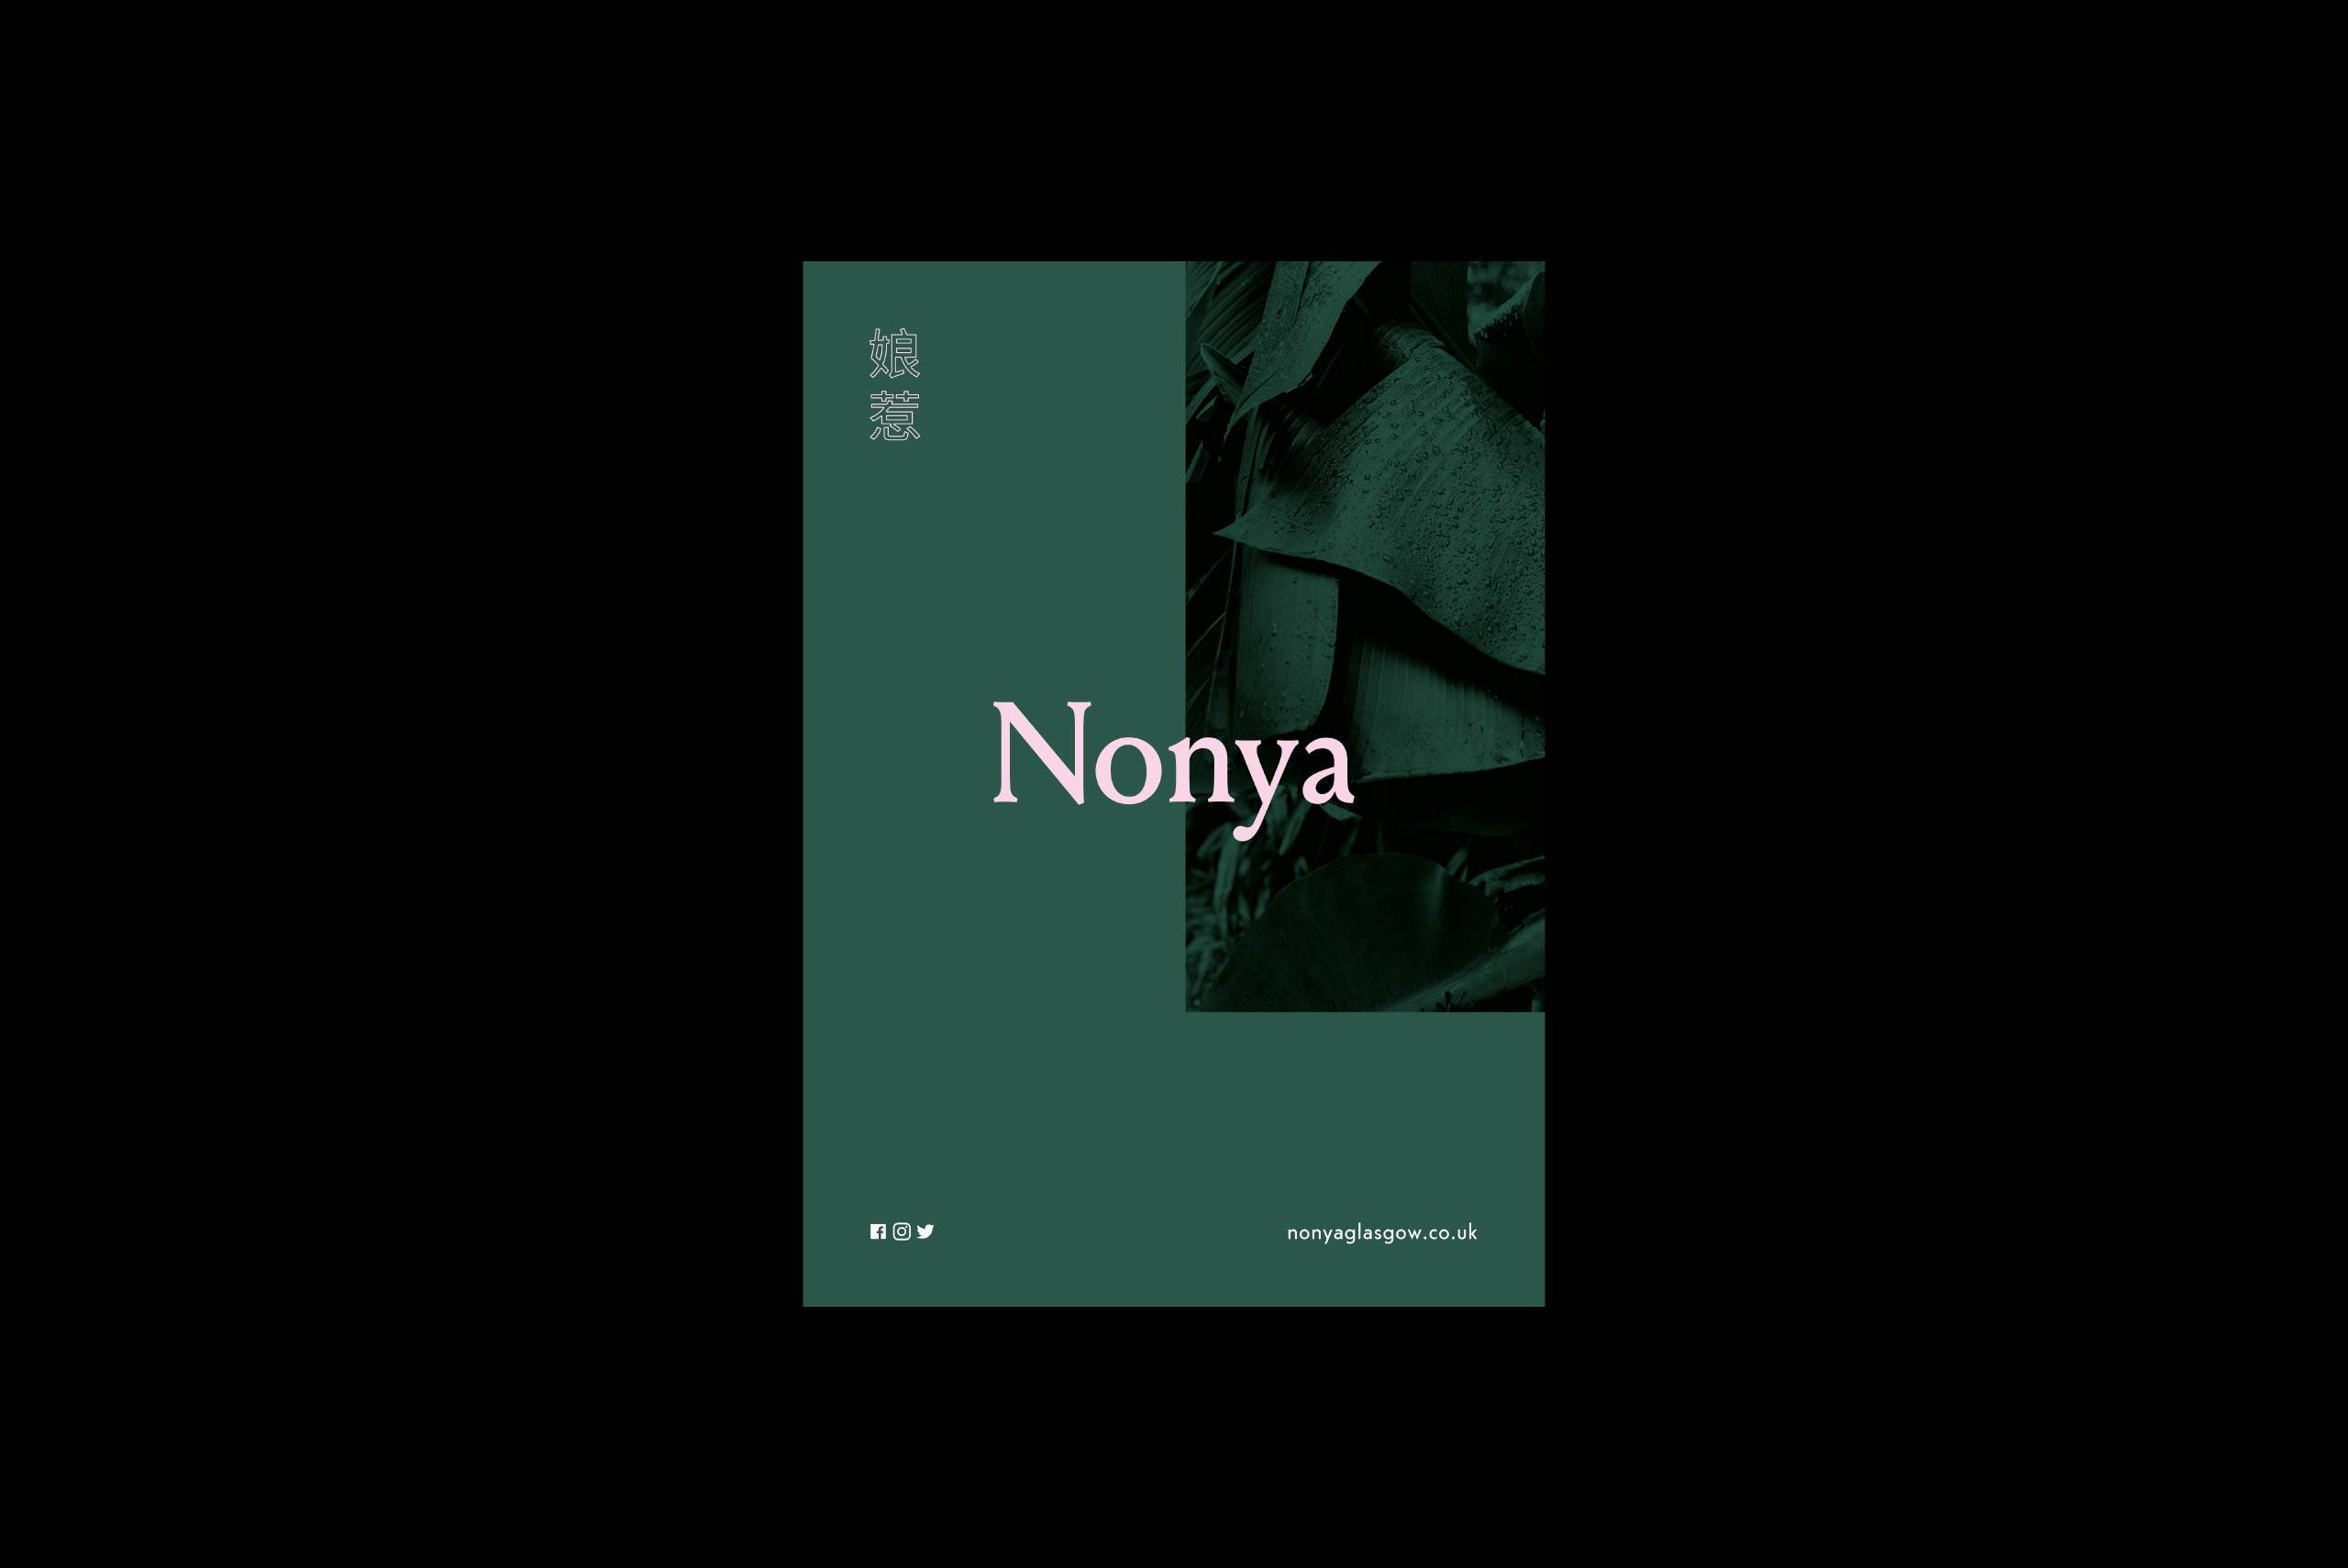 ROL_Website_Projects_Nonya_1 copy 8